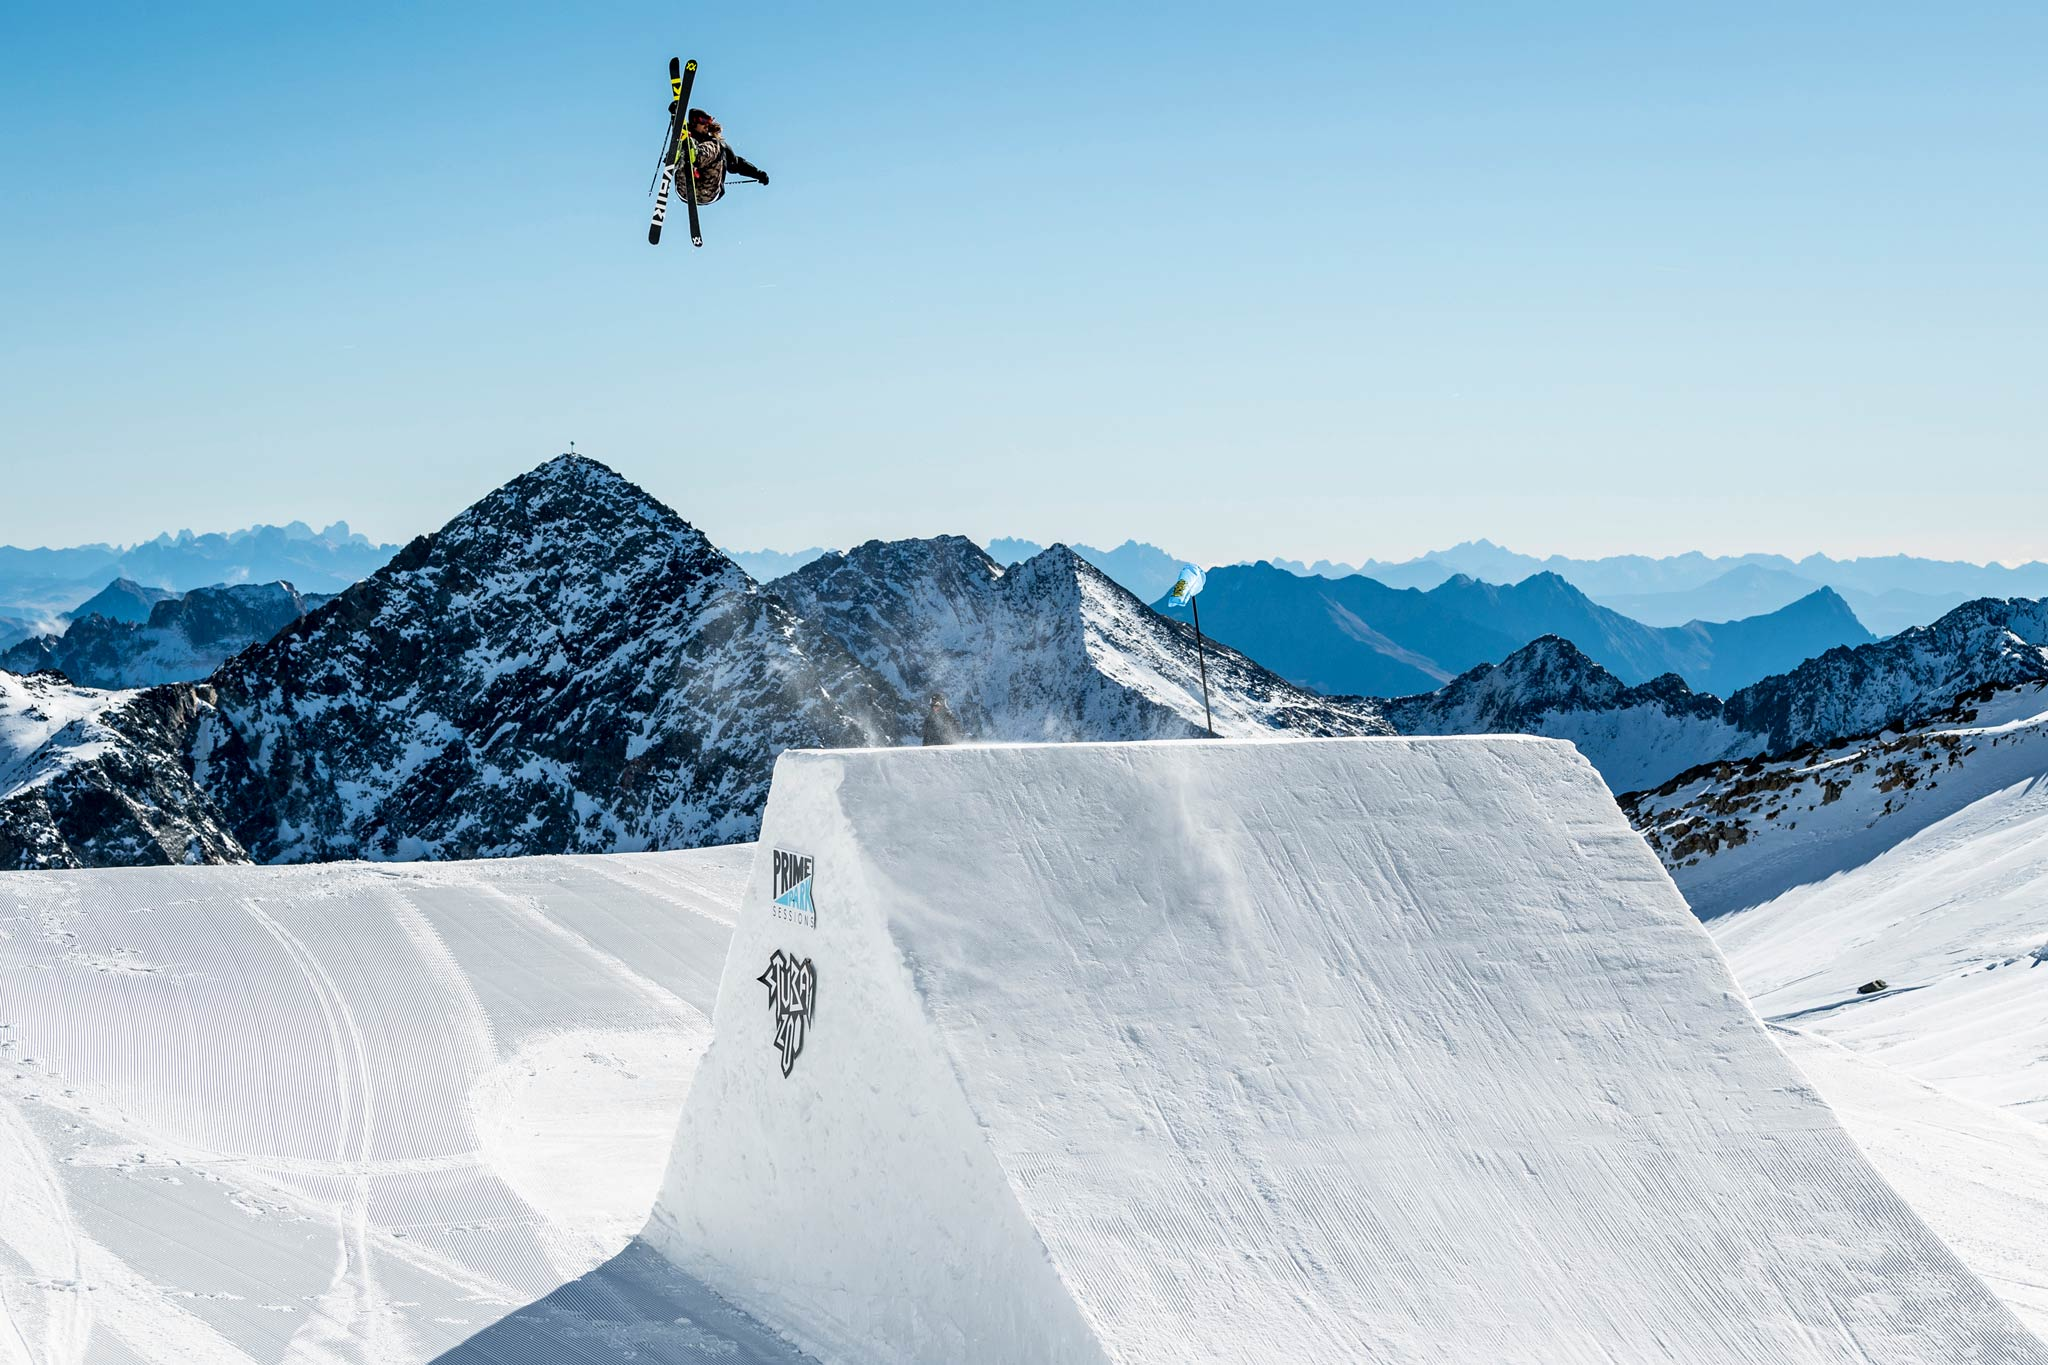 Rider: McRae Williams - Foto: Pally Learmond